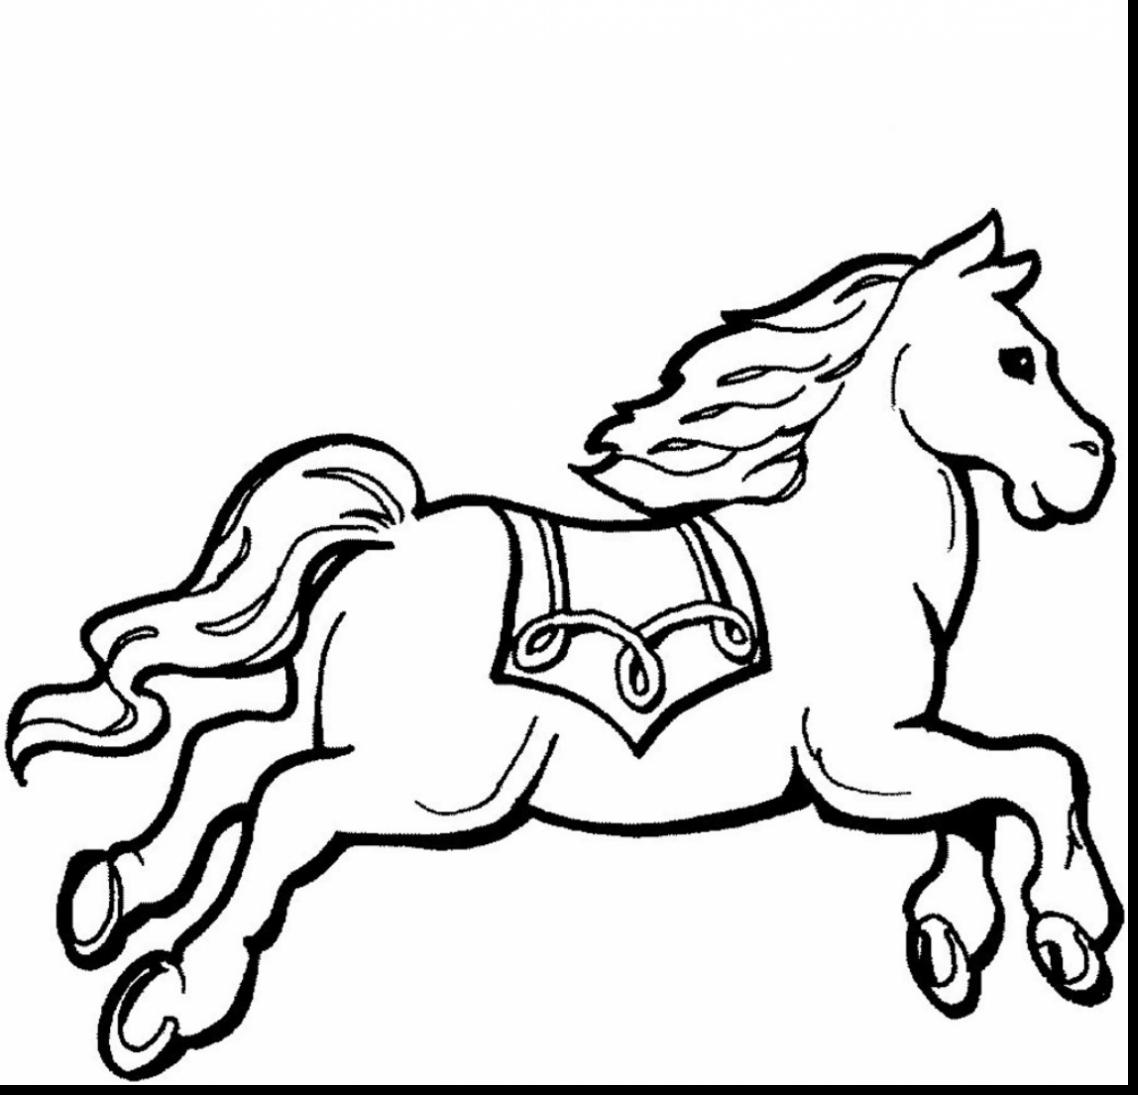 1138x1095 Extraordinary My Little Pony Coloring Pages Printable